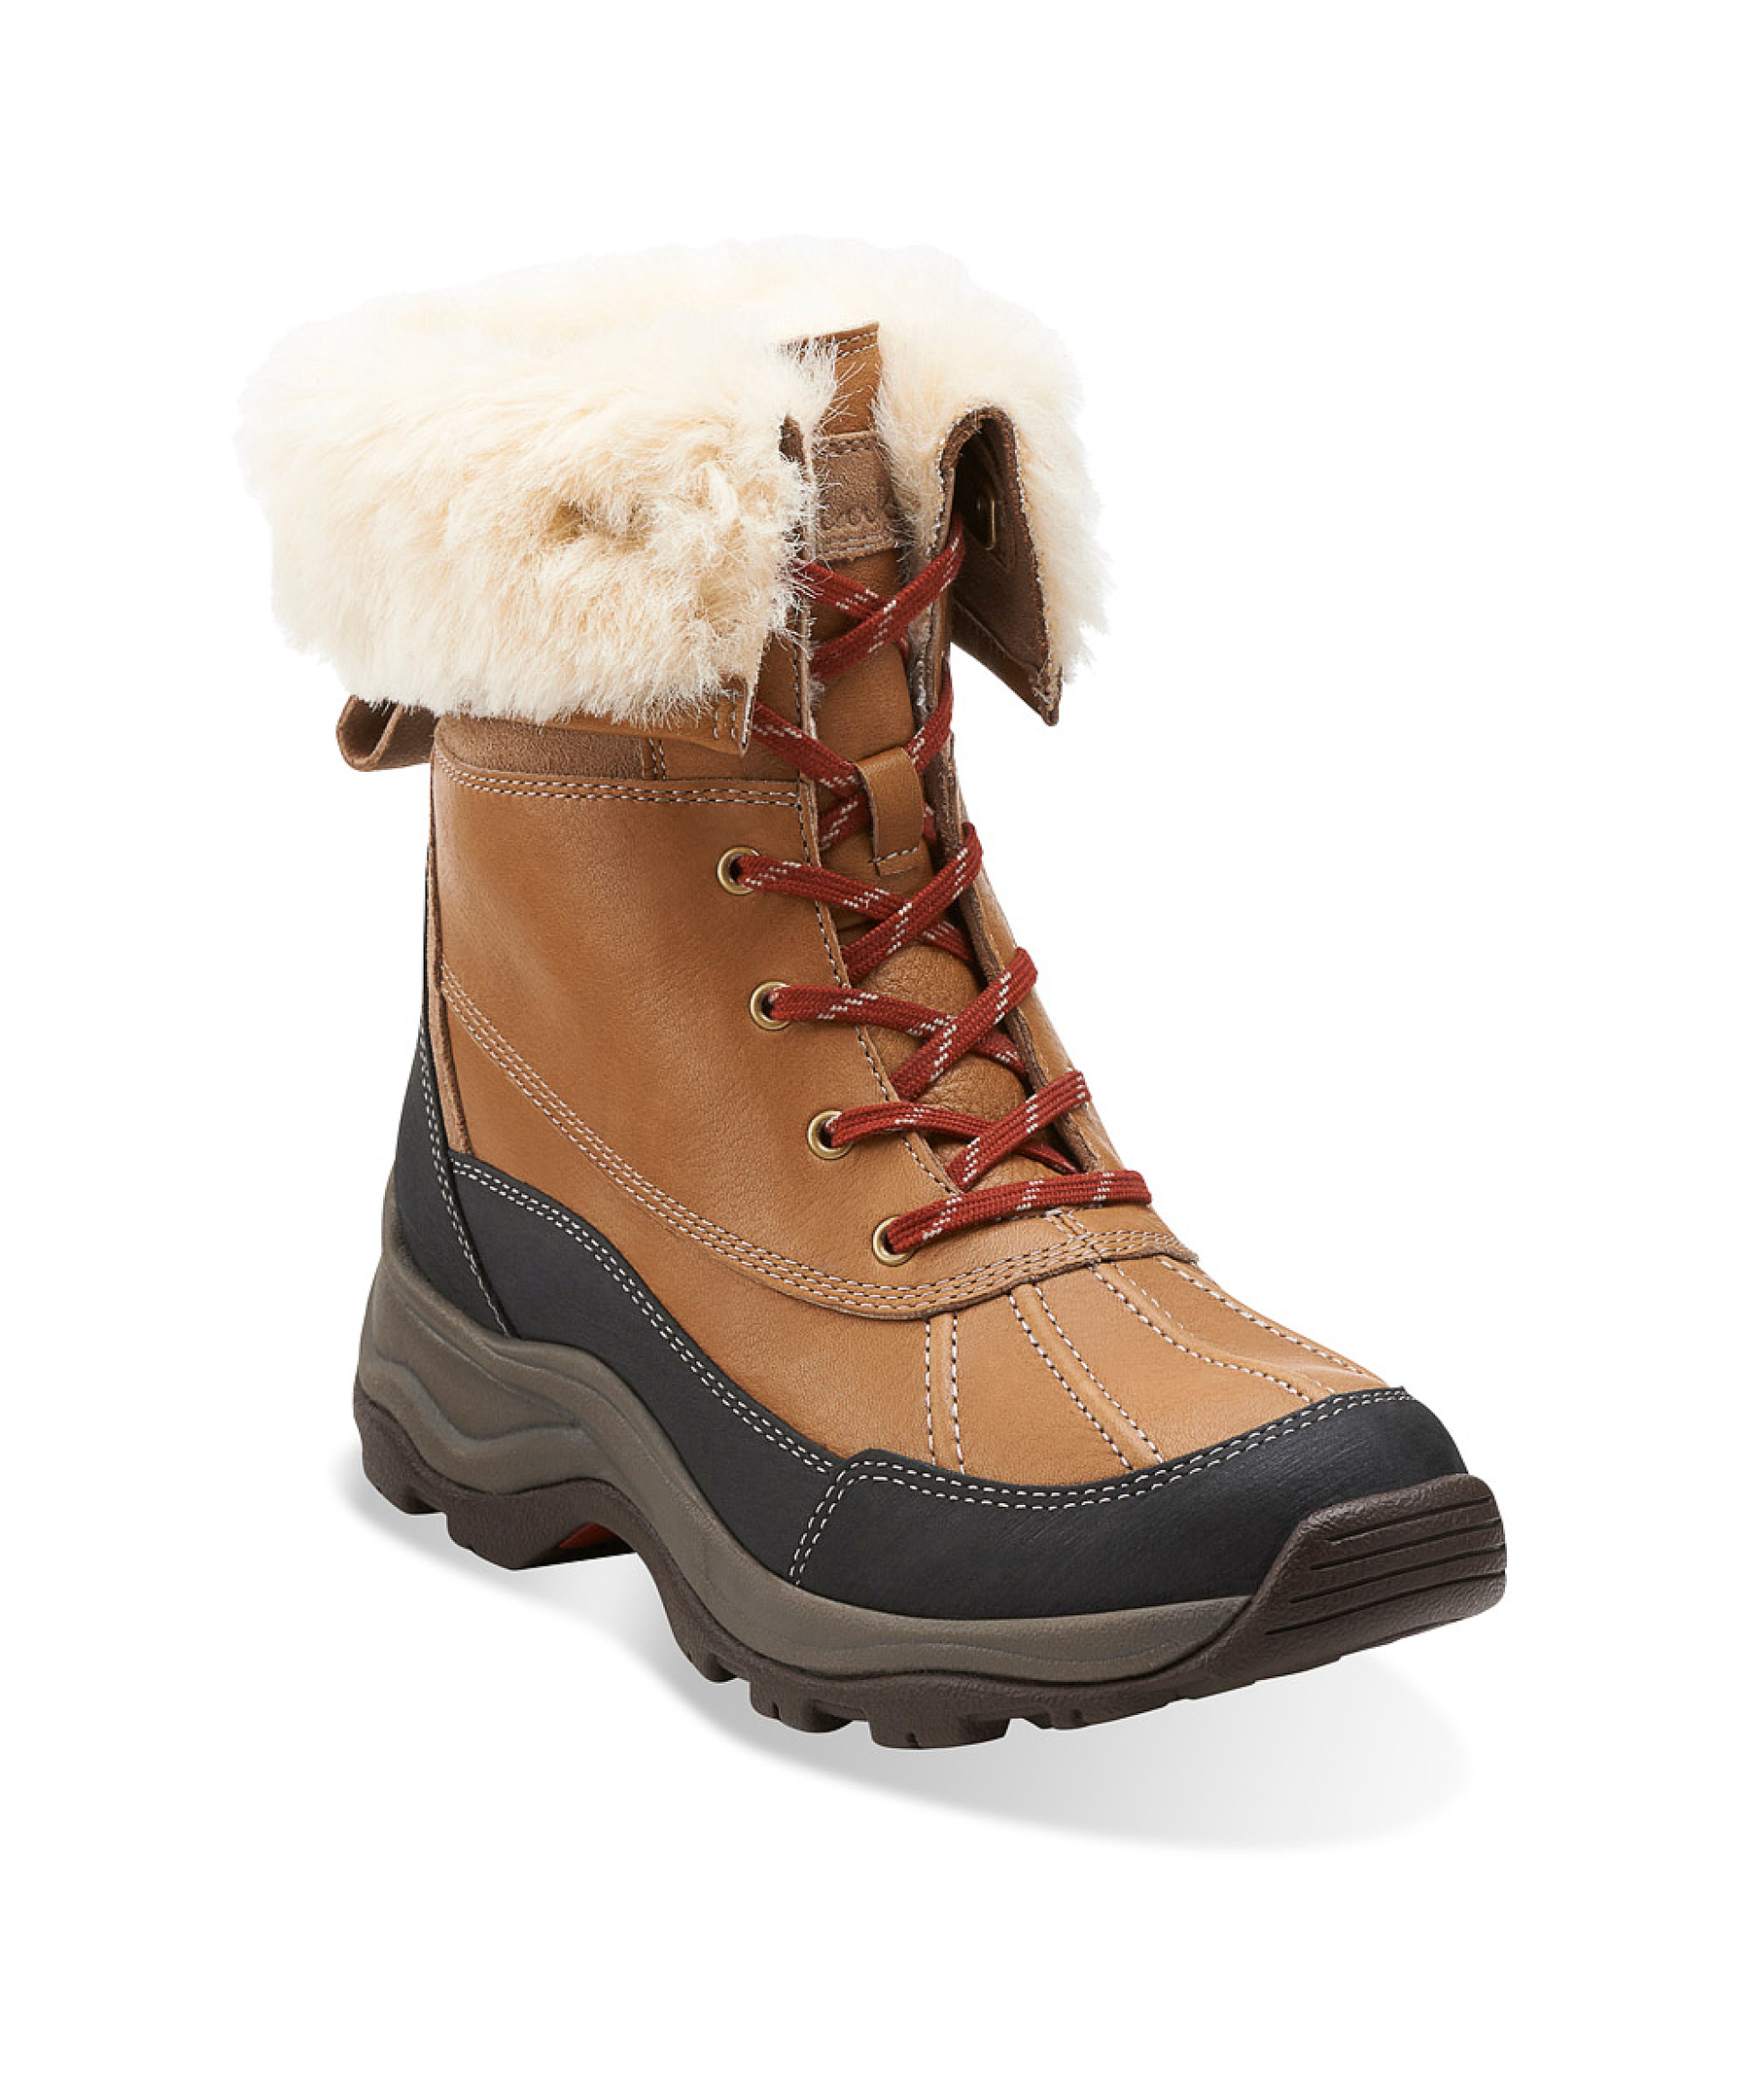 Clarks Women's Arctic Venture Snow Boots in Brown (camel